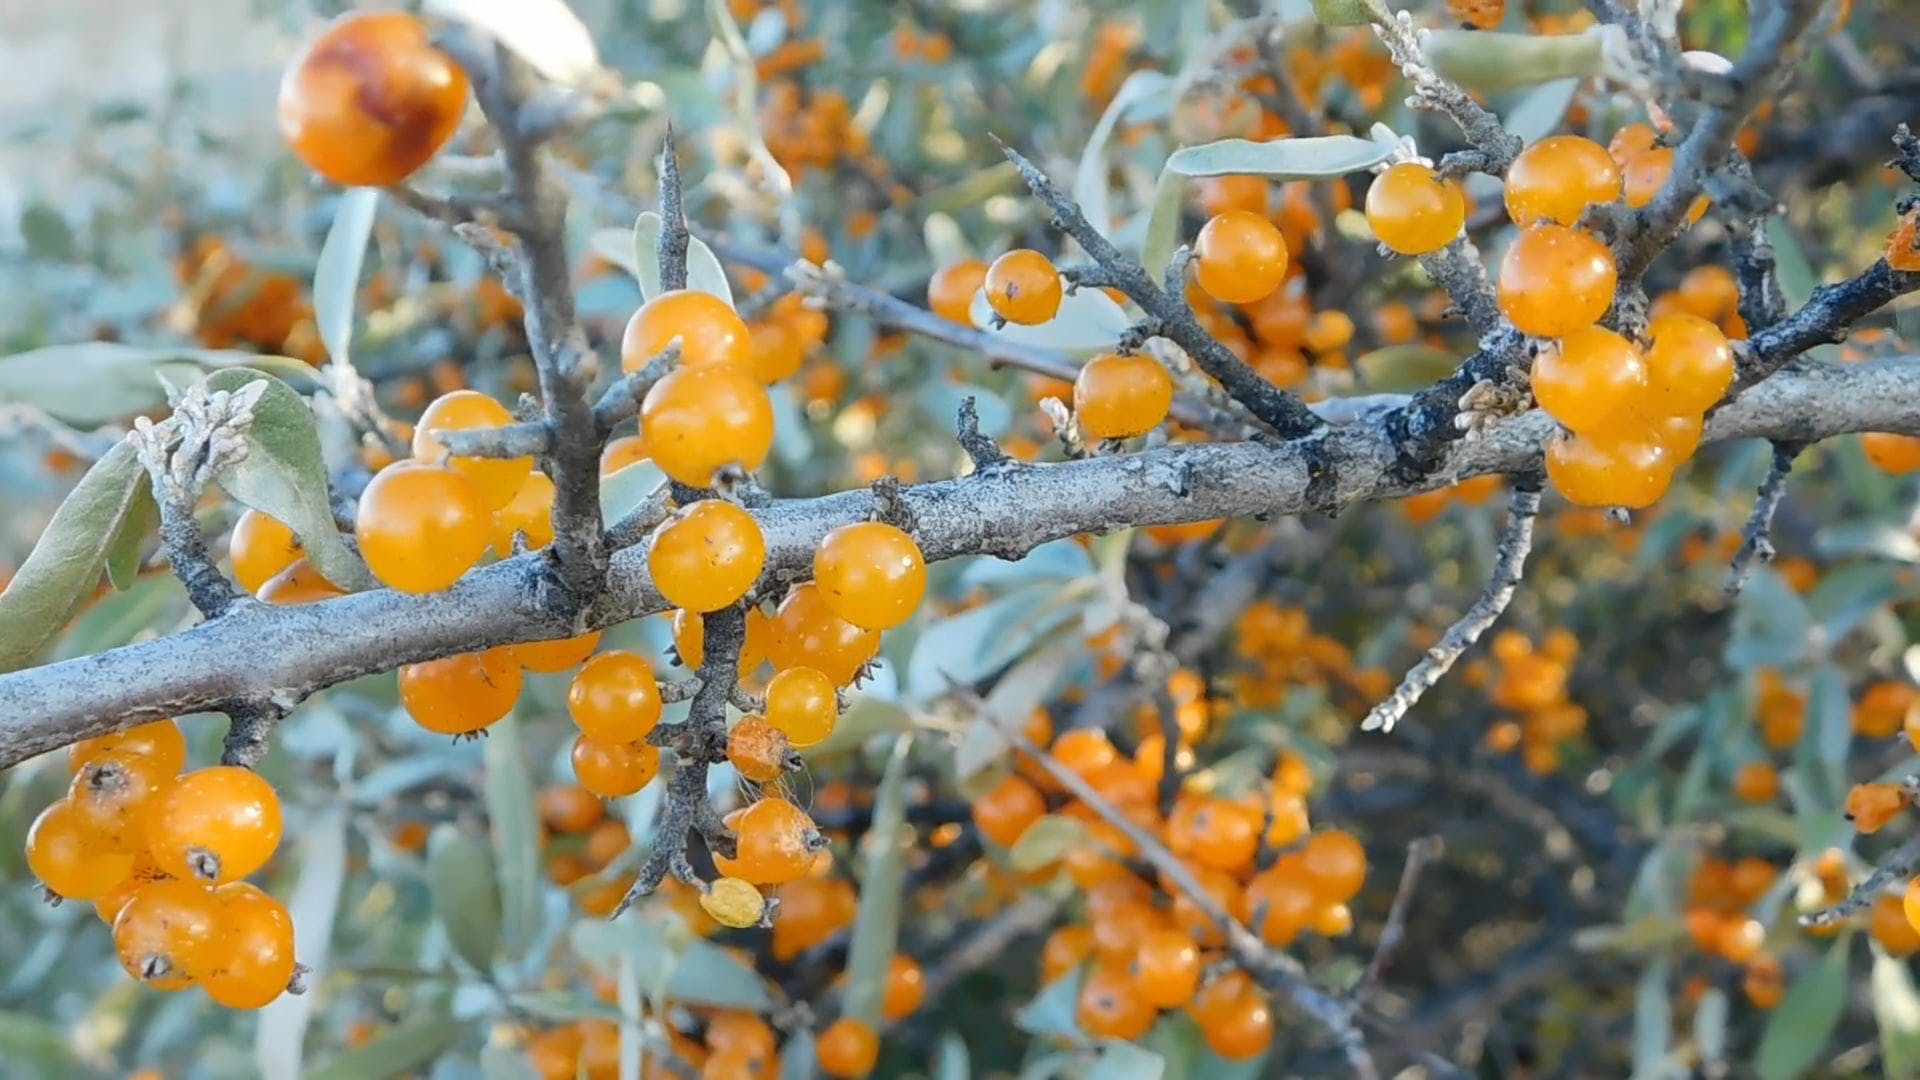 Close-Up View-Sea Buckthorn Berries